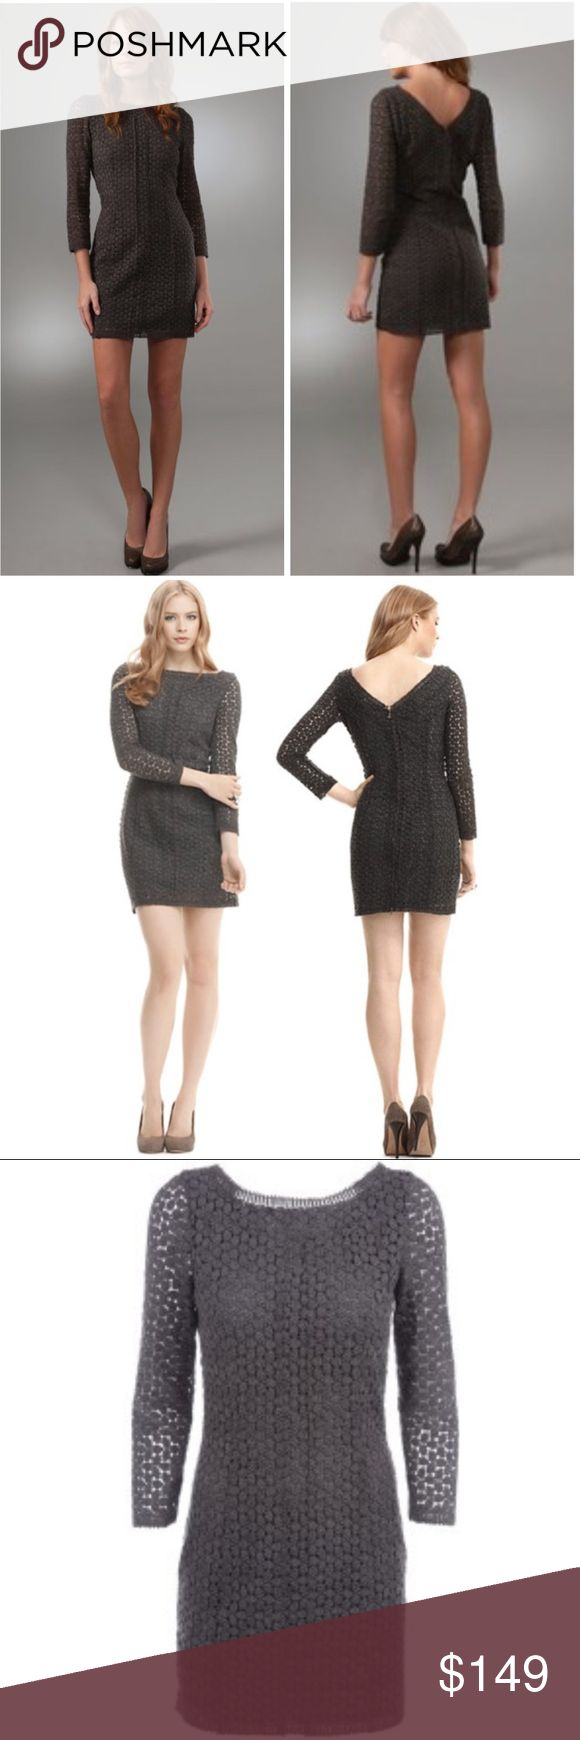 DVF Caritan Lace Crochet Tunic Grey Mini Dress Excellent preowned condition, like new. Exude vintage style in this perfect-for-fall crocheted lace dress from DIANE von FURSTENBERG. Add modern edge with studded neutral pumps. Heather gray crew neck dress, Three quarter sleeves, exposed zipper up to a V-neck  back, fully lined at the bodice, Picot-trimmed zigzag edges. Gorgeous! Diane Von Furstenberg Dresses Mini